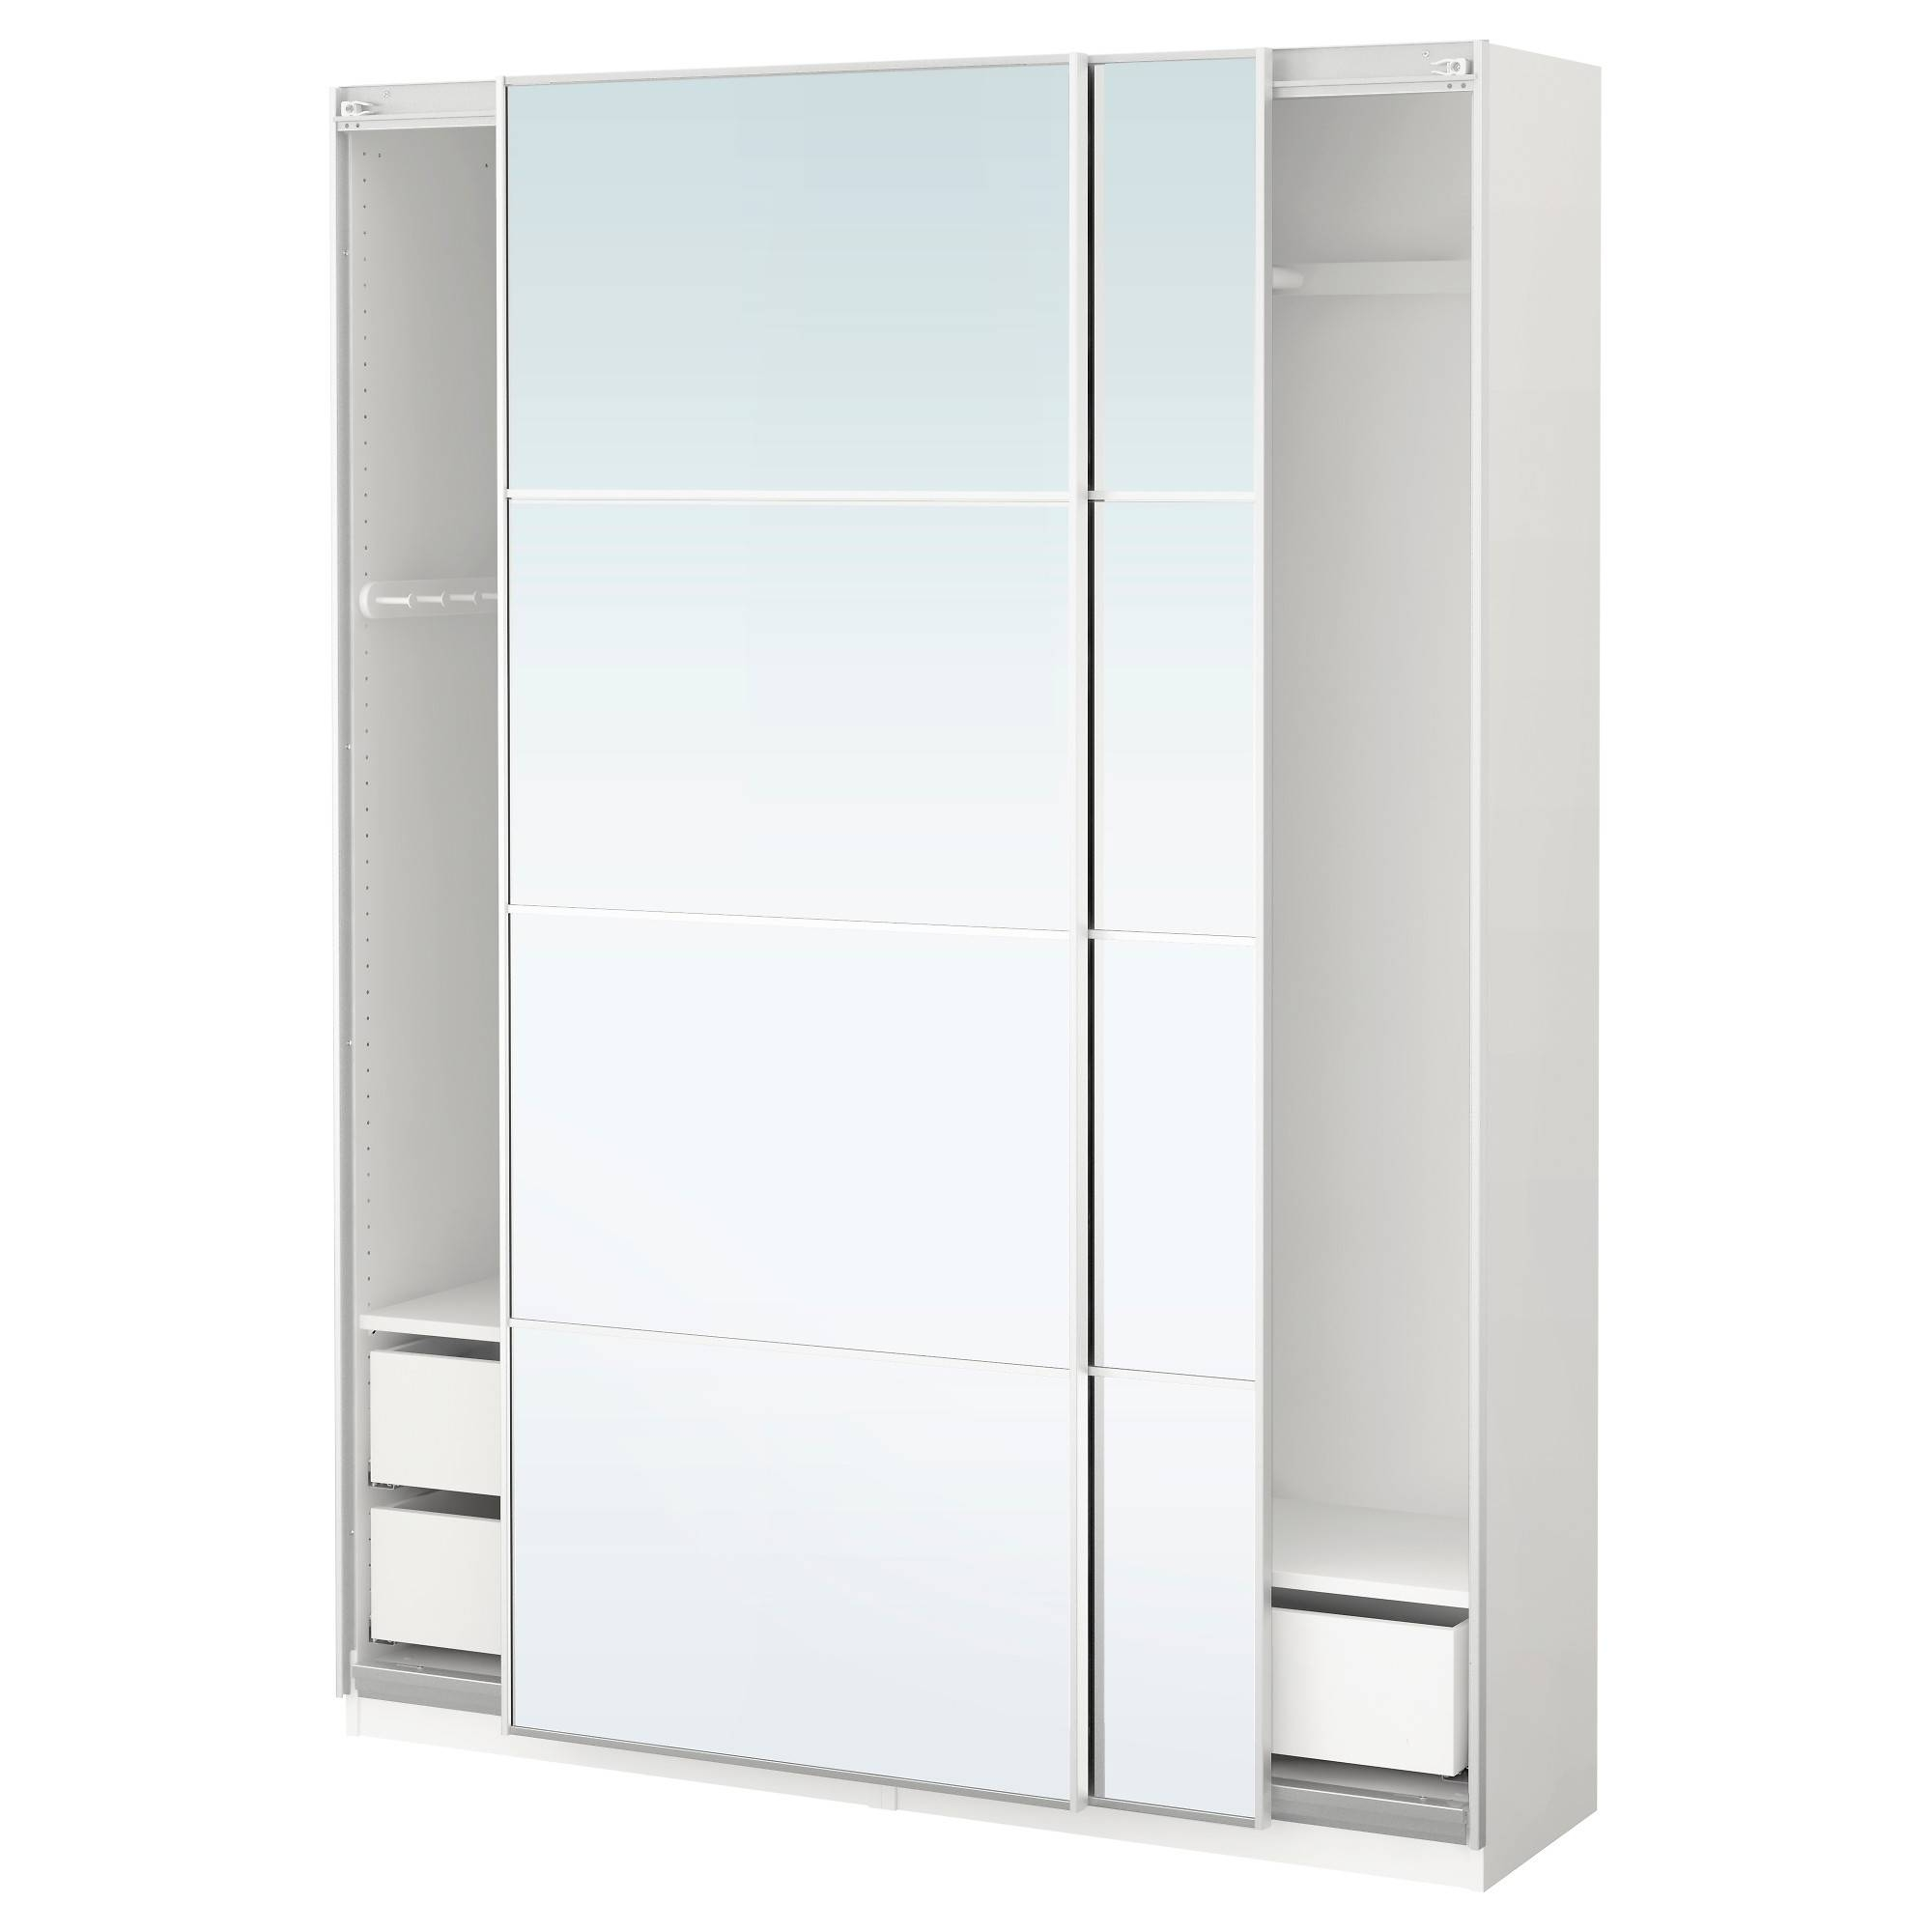 Wardrobes & Armoires – Open, Fitted, Sliding Doors & More - Ikea pertaining to Cheap White Wardrobes (Image 8 of 15)